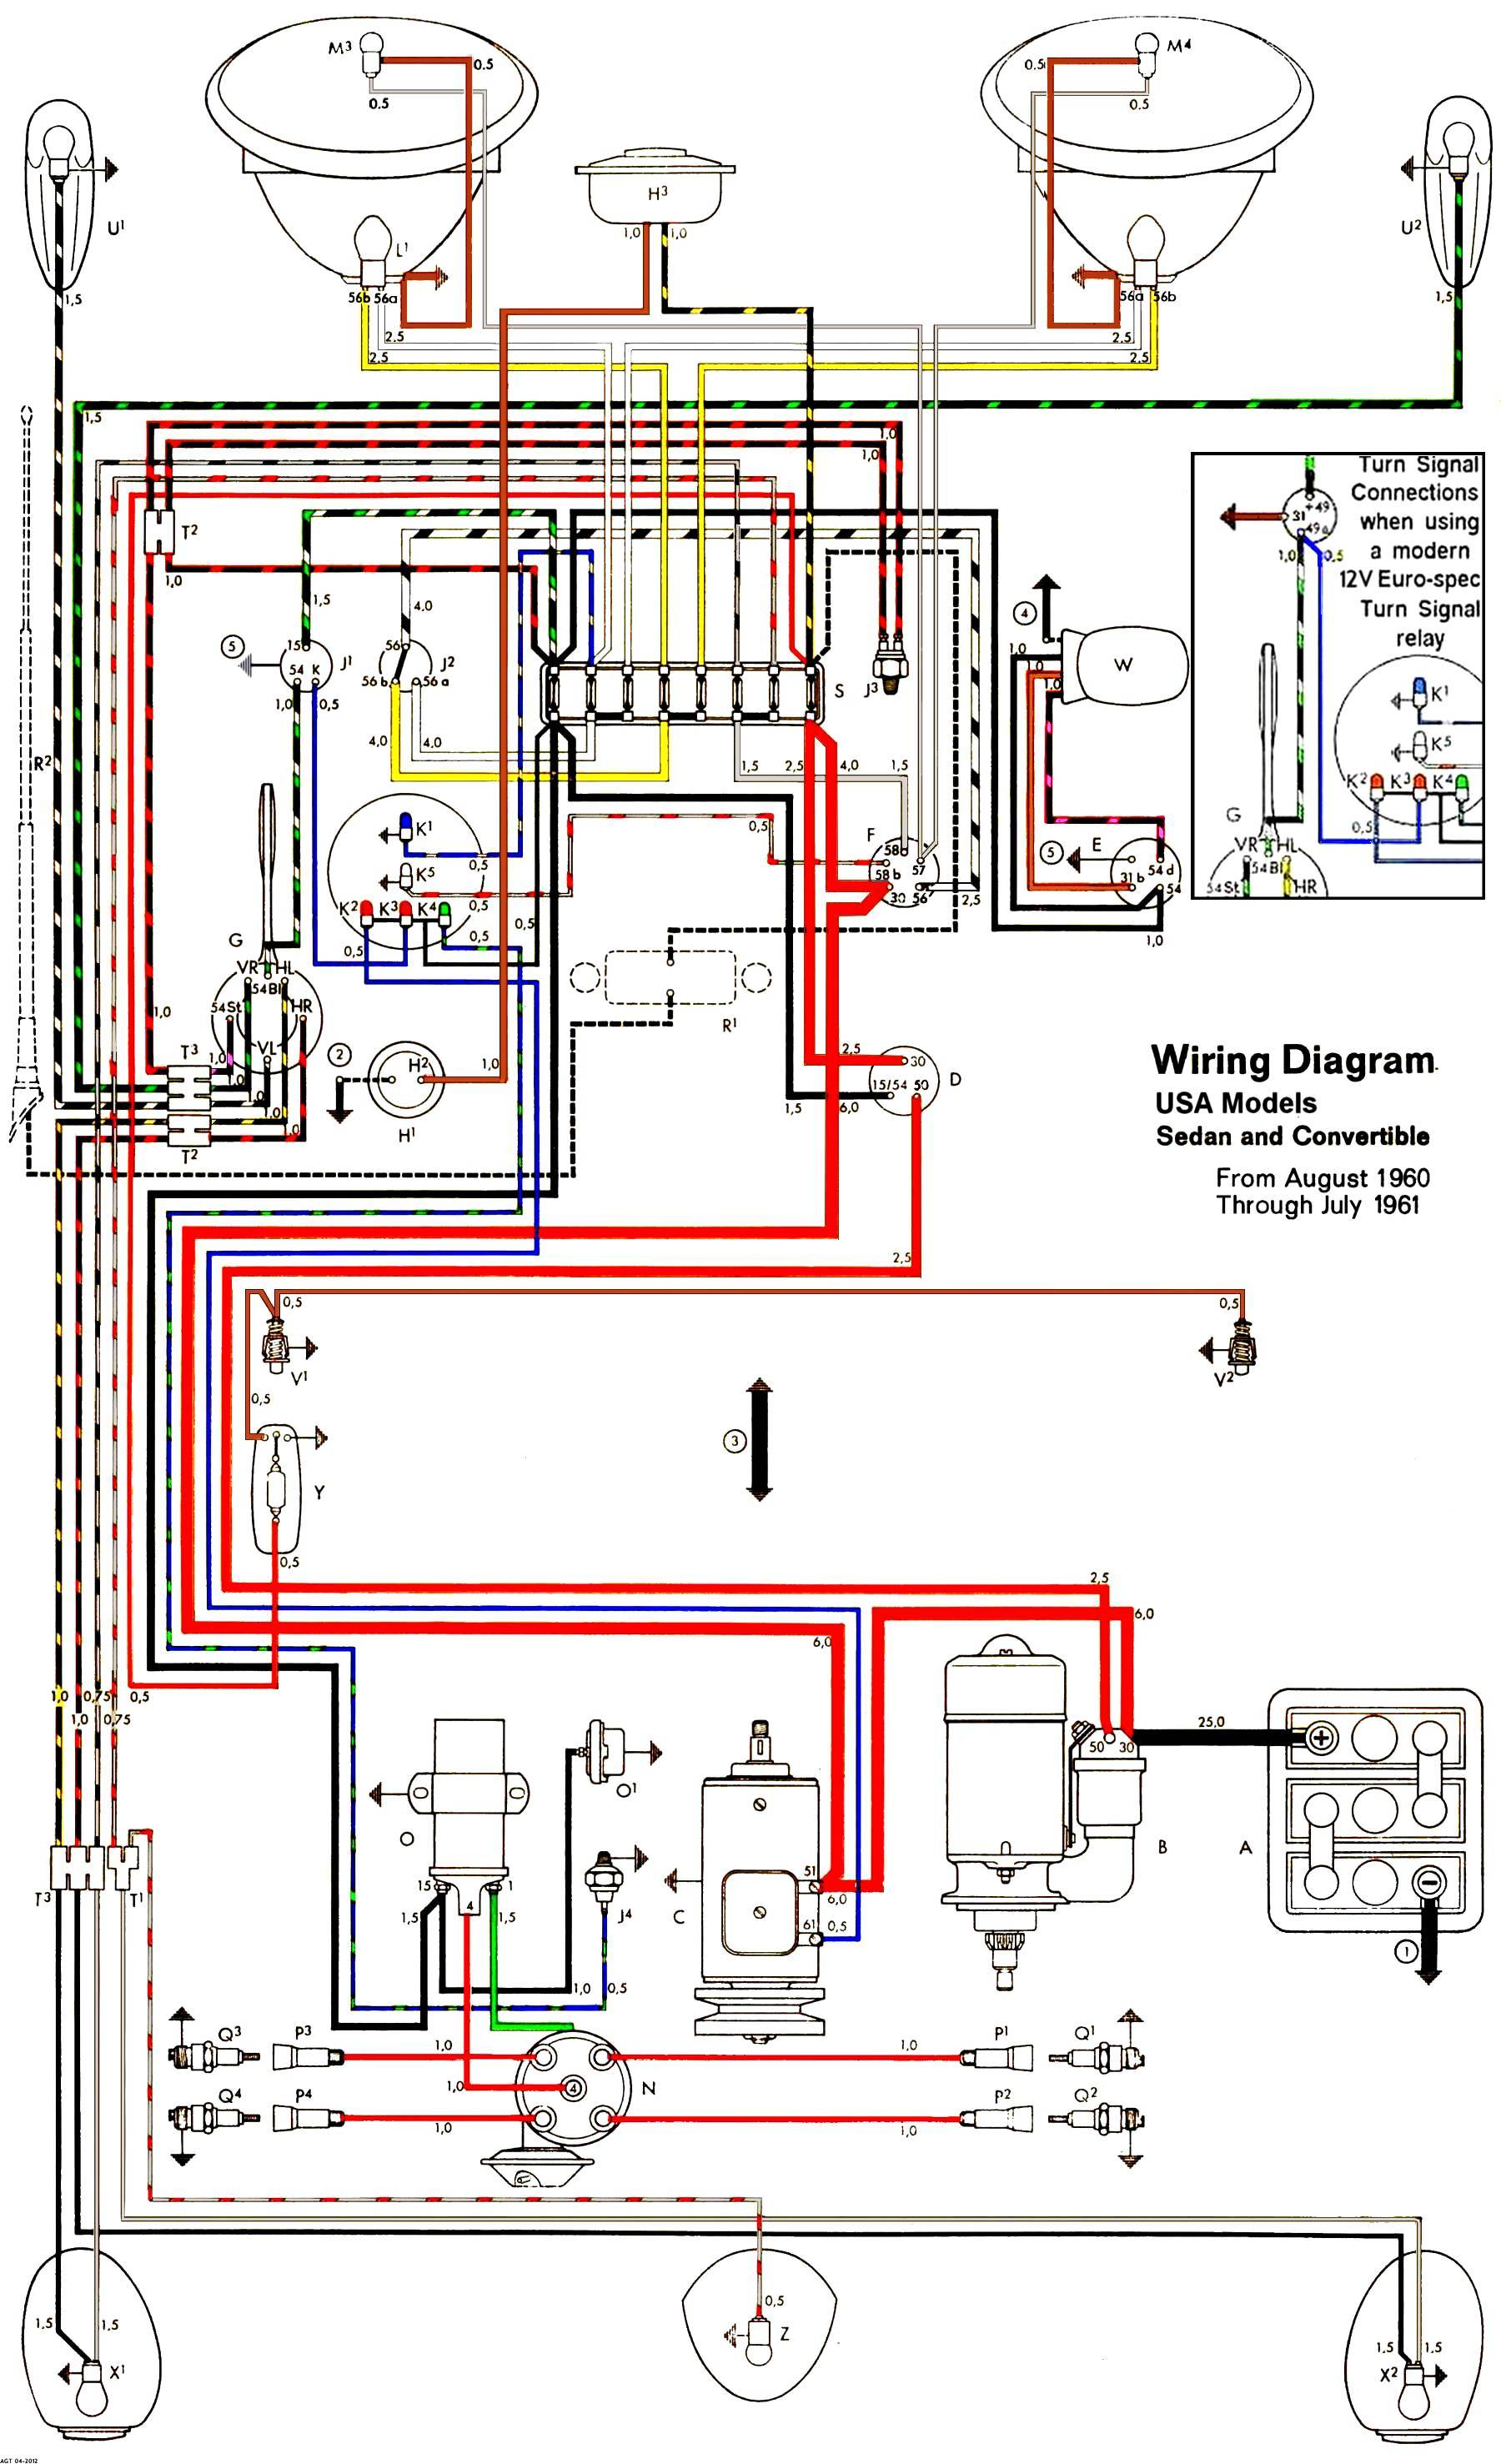 Yamaha Marine Ignition Switch Wiring Diagram as well Tbi Conversion Wiring Harness in addition No Dash Lights 25153 together with Wiringt1 furthermore Weber Carburetor Installation On Jeep 258. on jeep cj5 ignition wiring